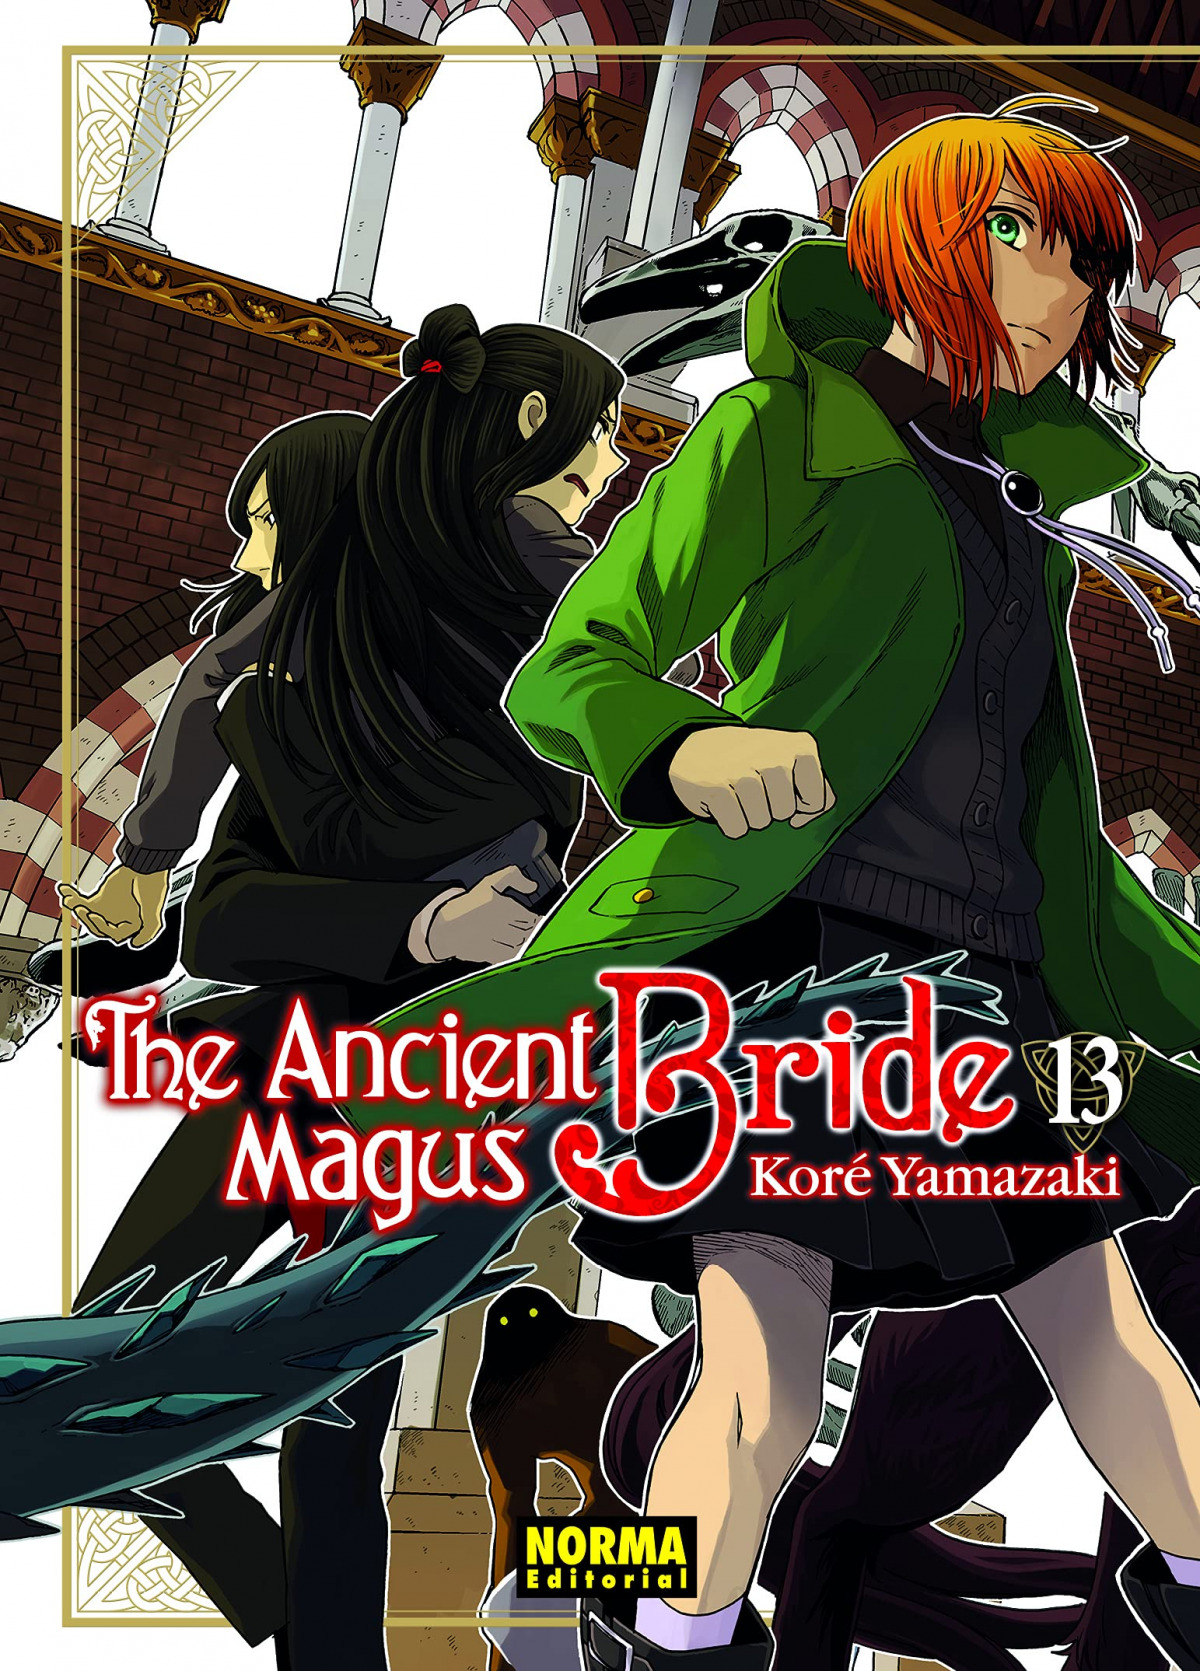 THE ANCIENT MAGUS BRIDE 13